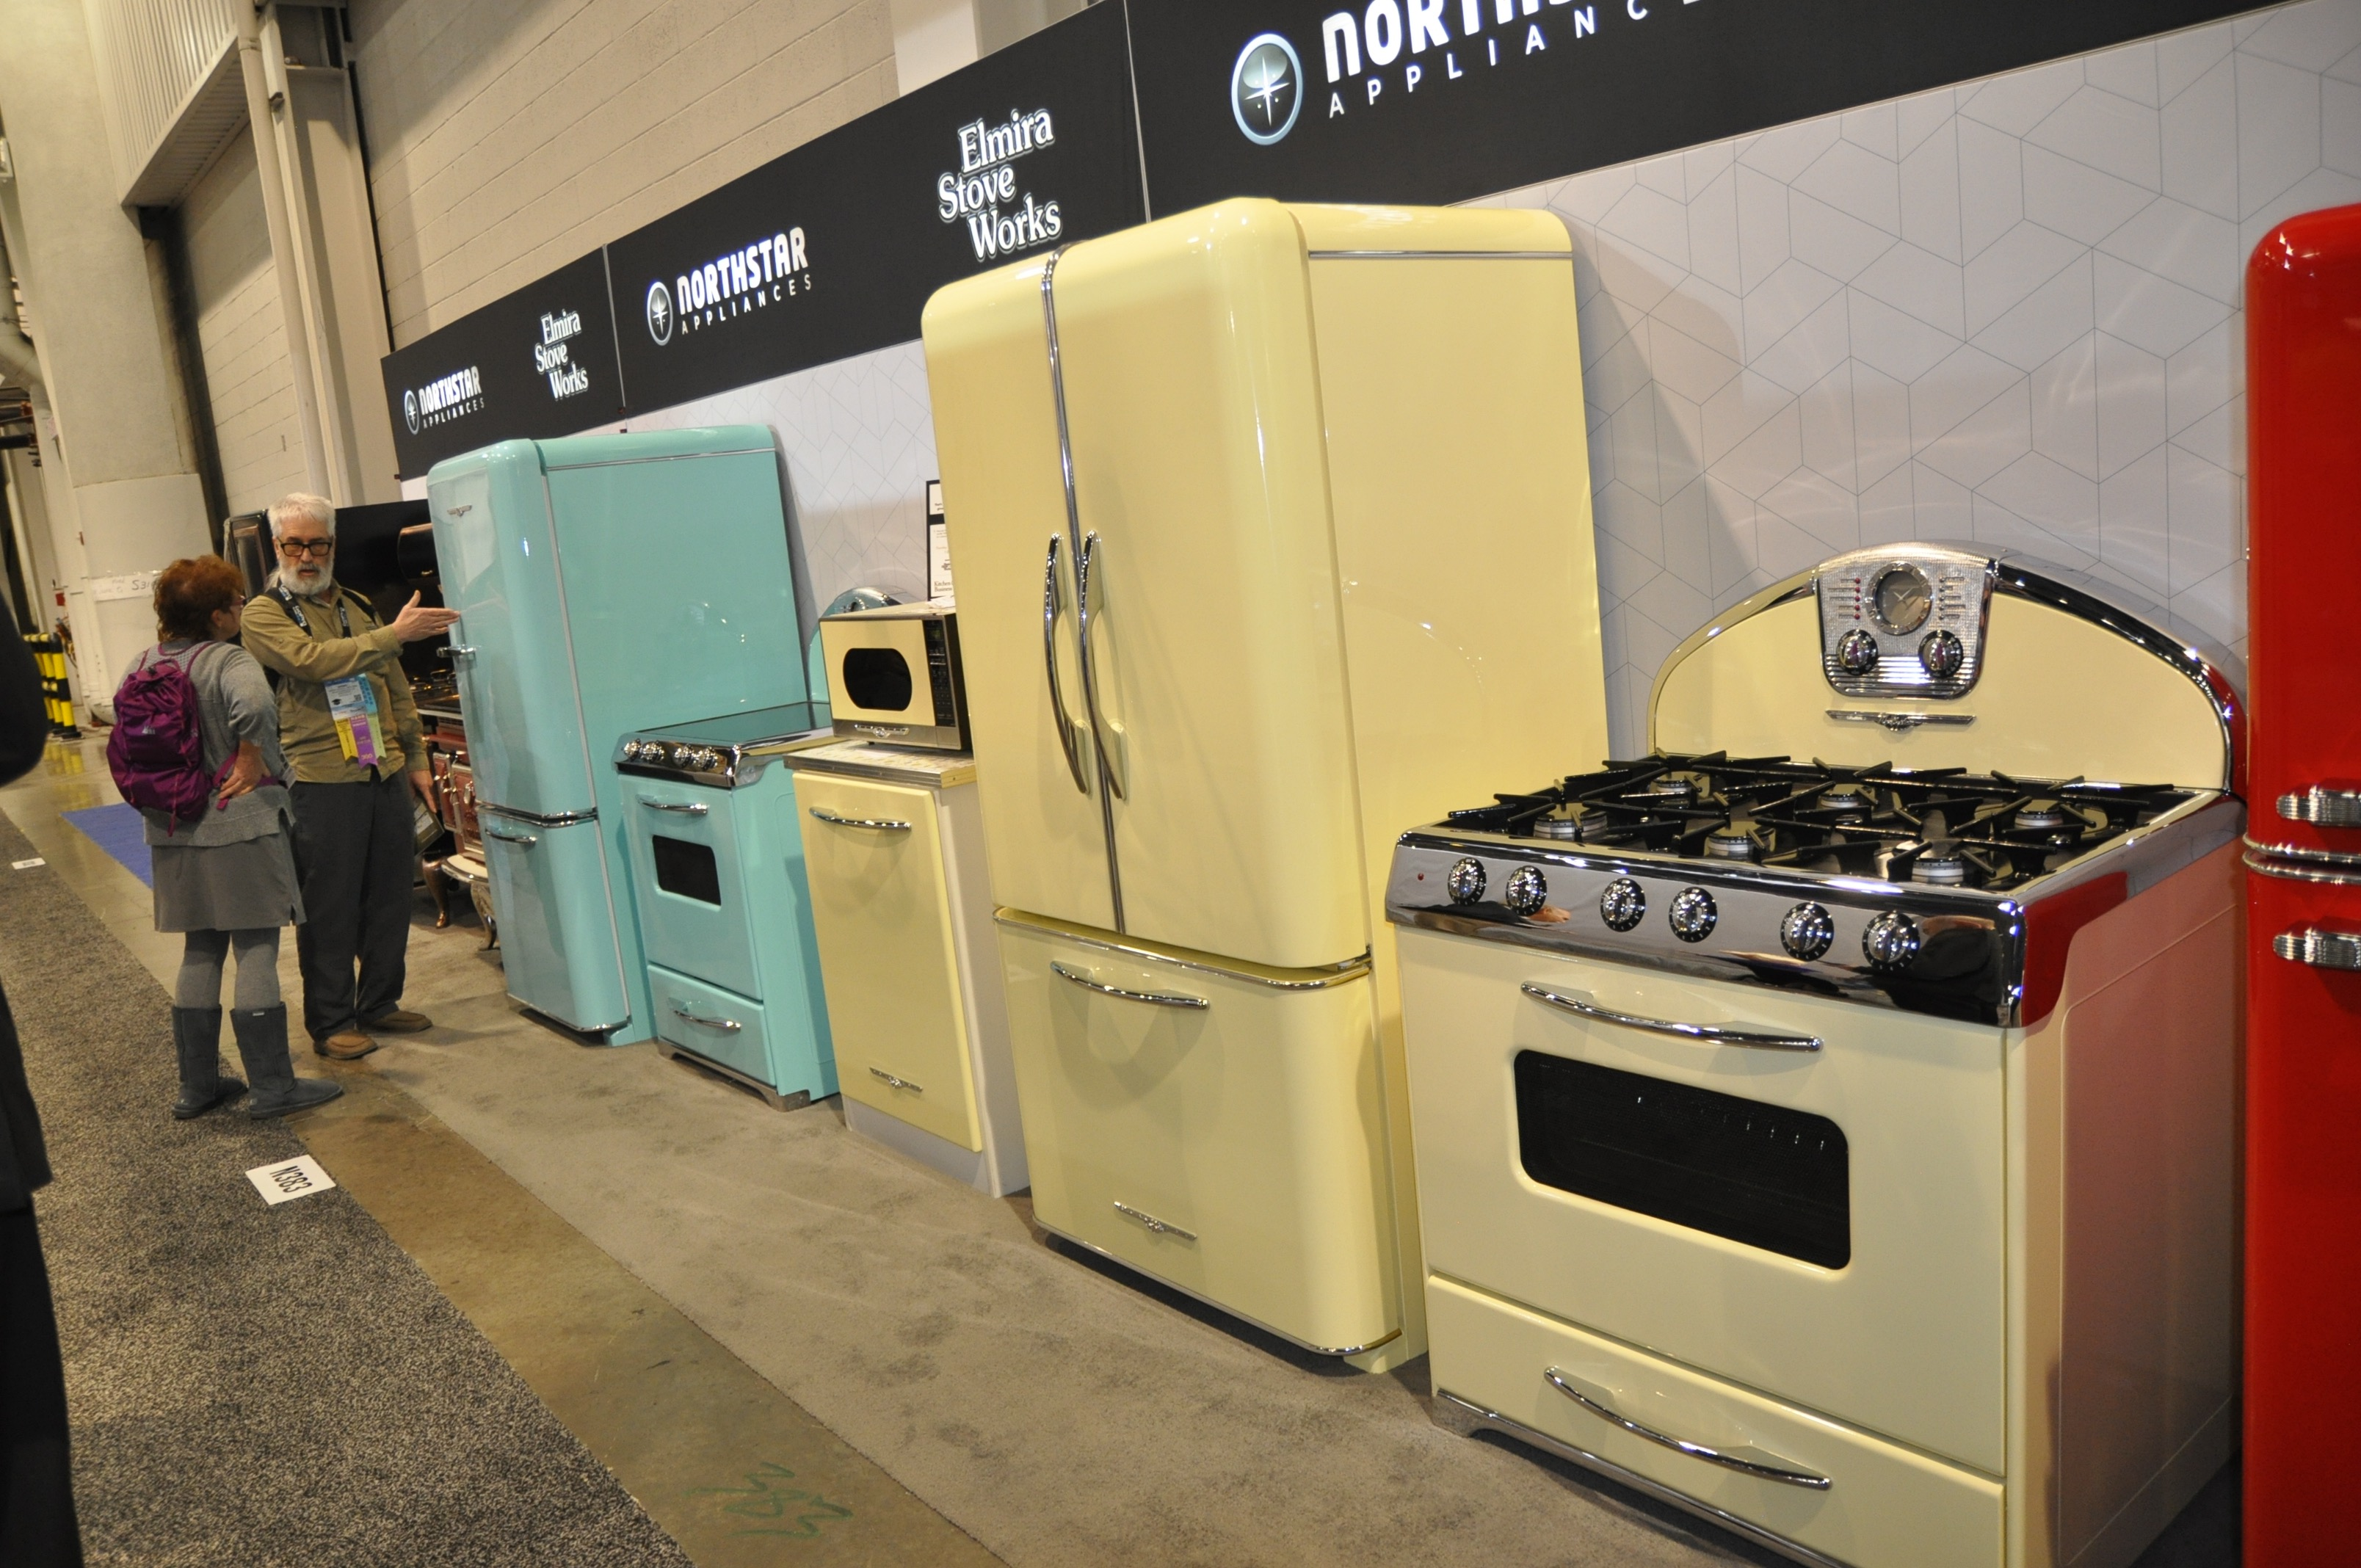 Uncategorized Elmira Appliances Kitchen trends seen at kitchen bath industry show hardware retailing whether its a small addition like new toilet or bathroom vanity an entire remodel including appliances ca